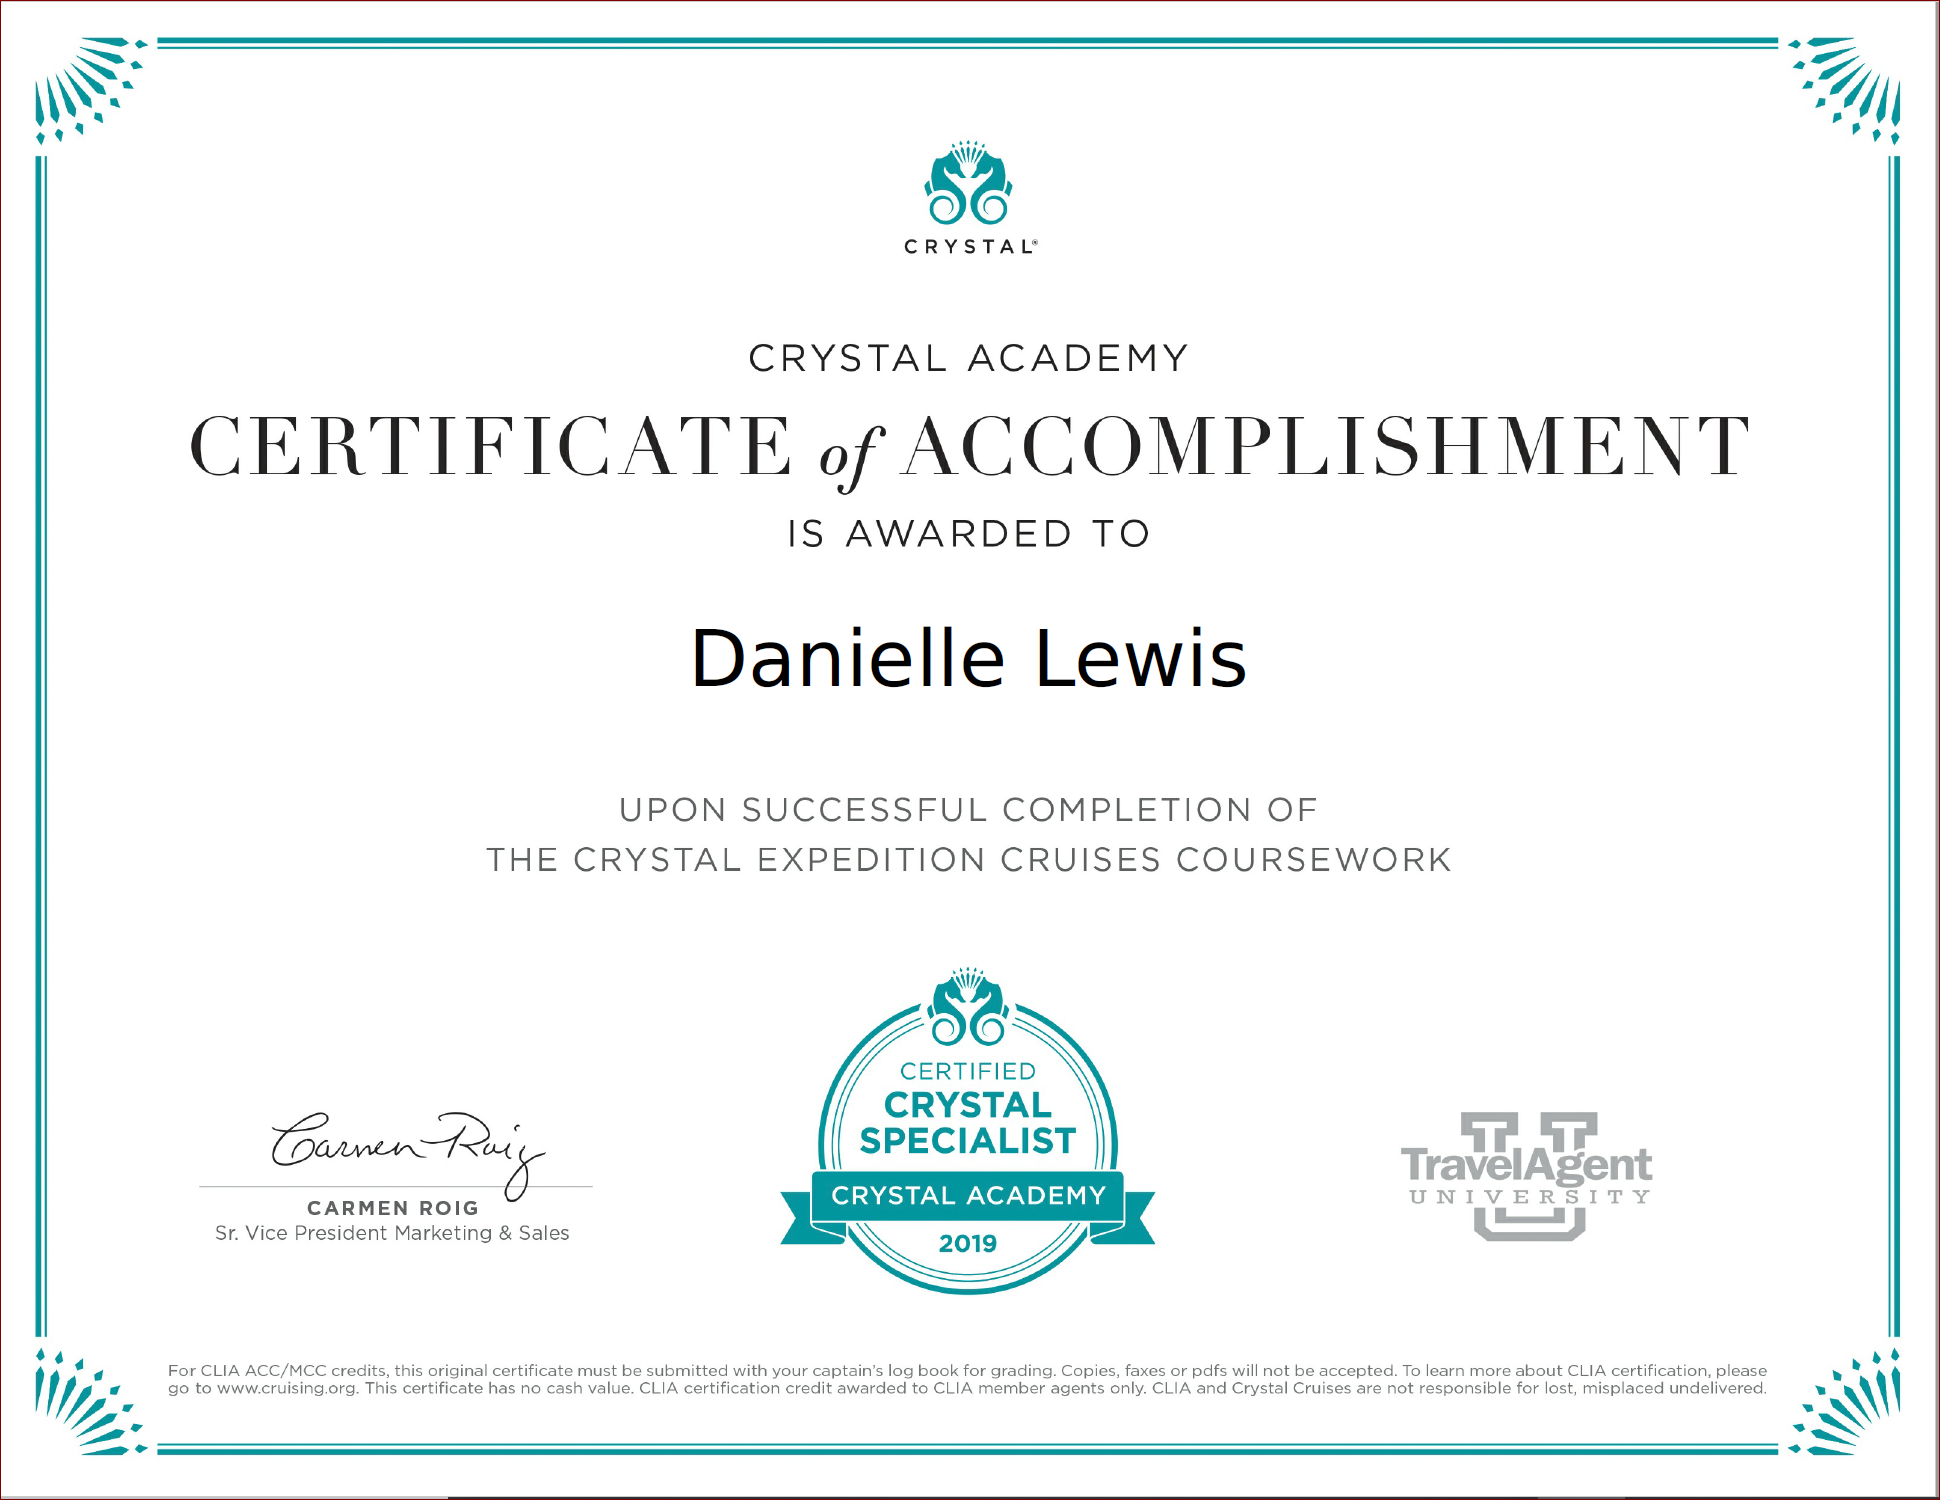 SelfishMe Travel - Crystal Cruises Crystal Expedition Cruises certificate